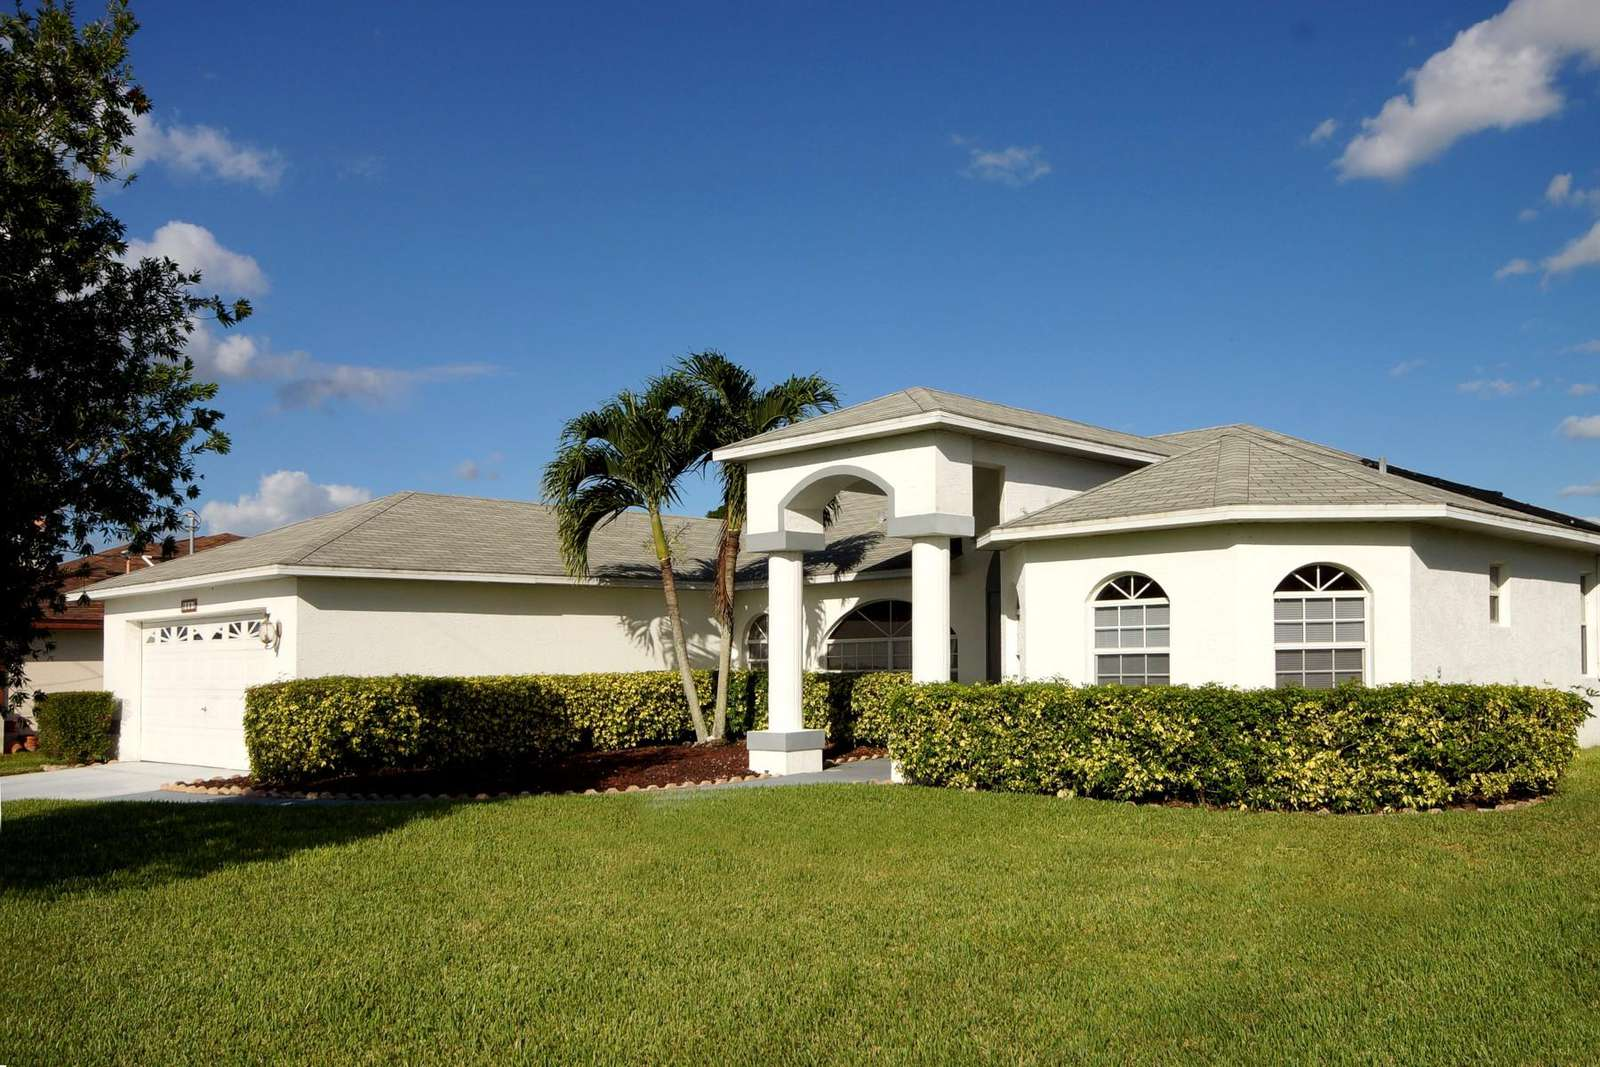 Wischis Florida Home - Vacation Homes Cape Coral - Property Management Cape Coral - Real Estate